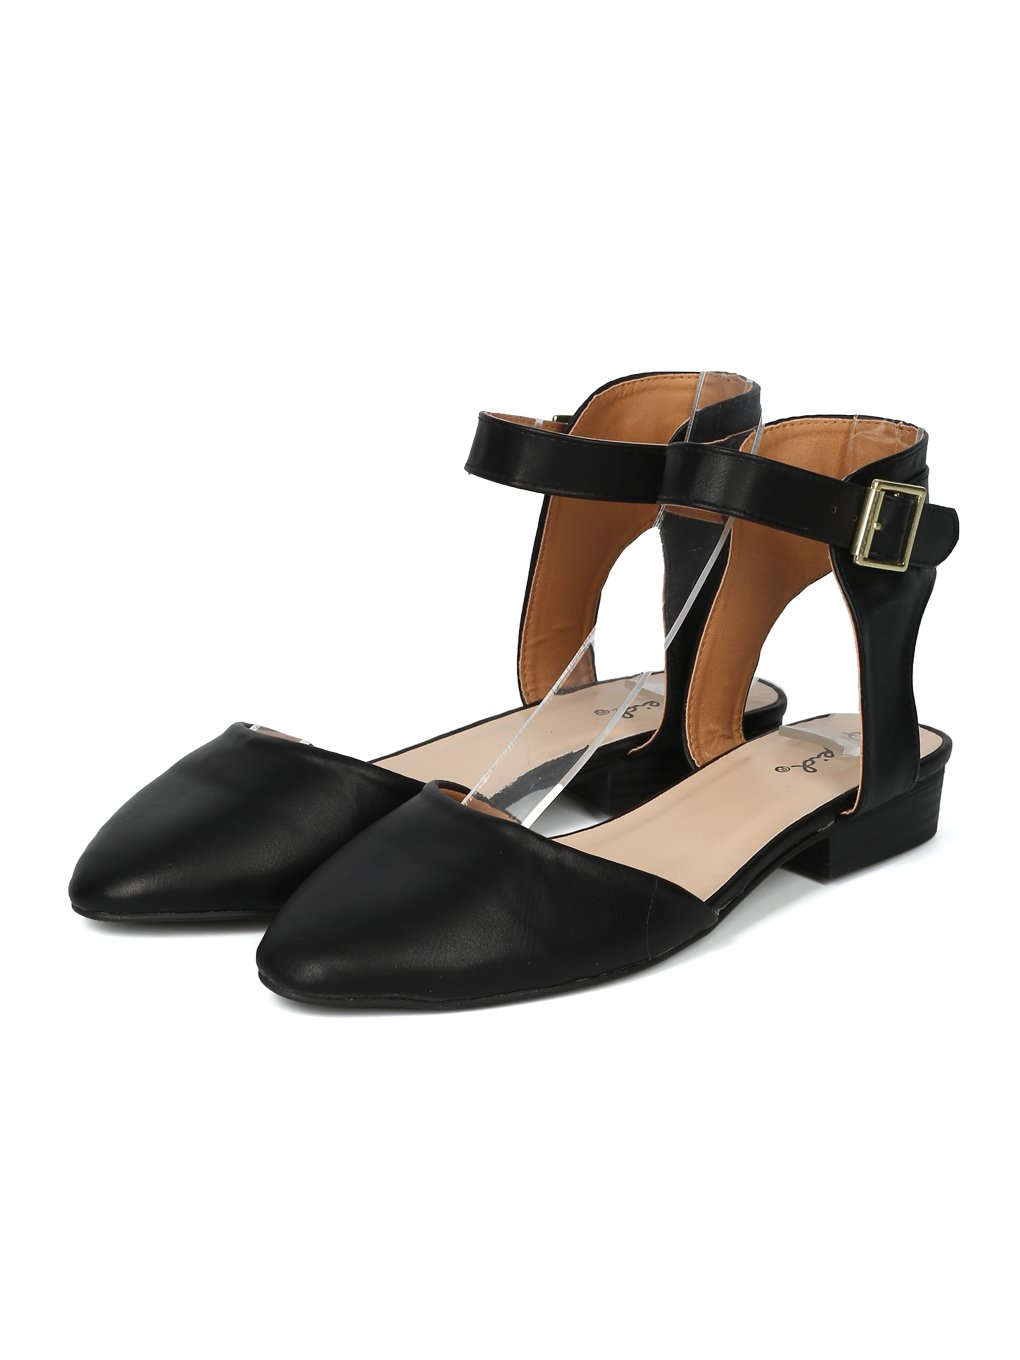 Women Pointy Toe D'Orsay Ankle Strap Flat - IA01 by Qupid Collection B07FCWD17B 8 B(M) US|Black Leatherette